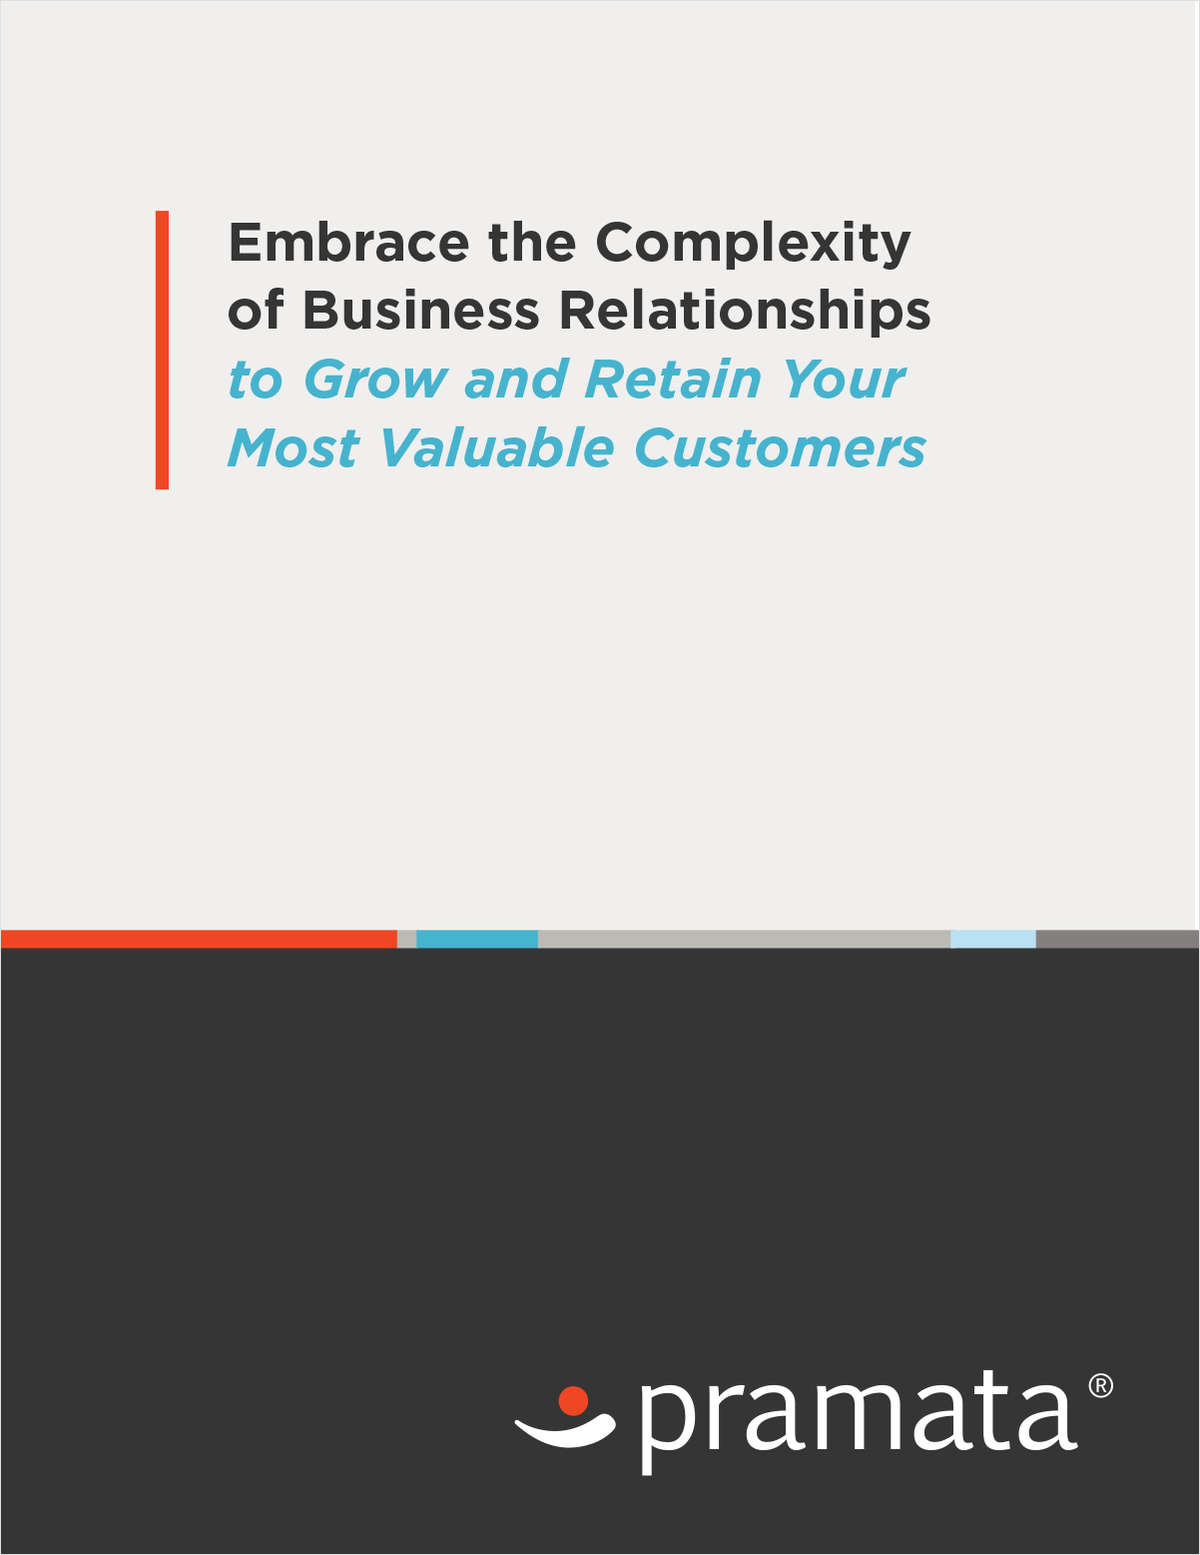 Embrace the Complexity of Business Relationships to Grow and Retain Your Most Valuable Customers